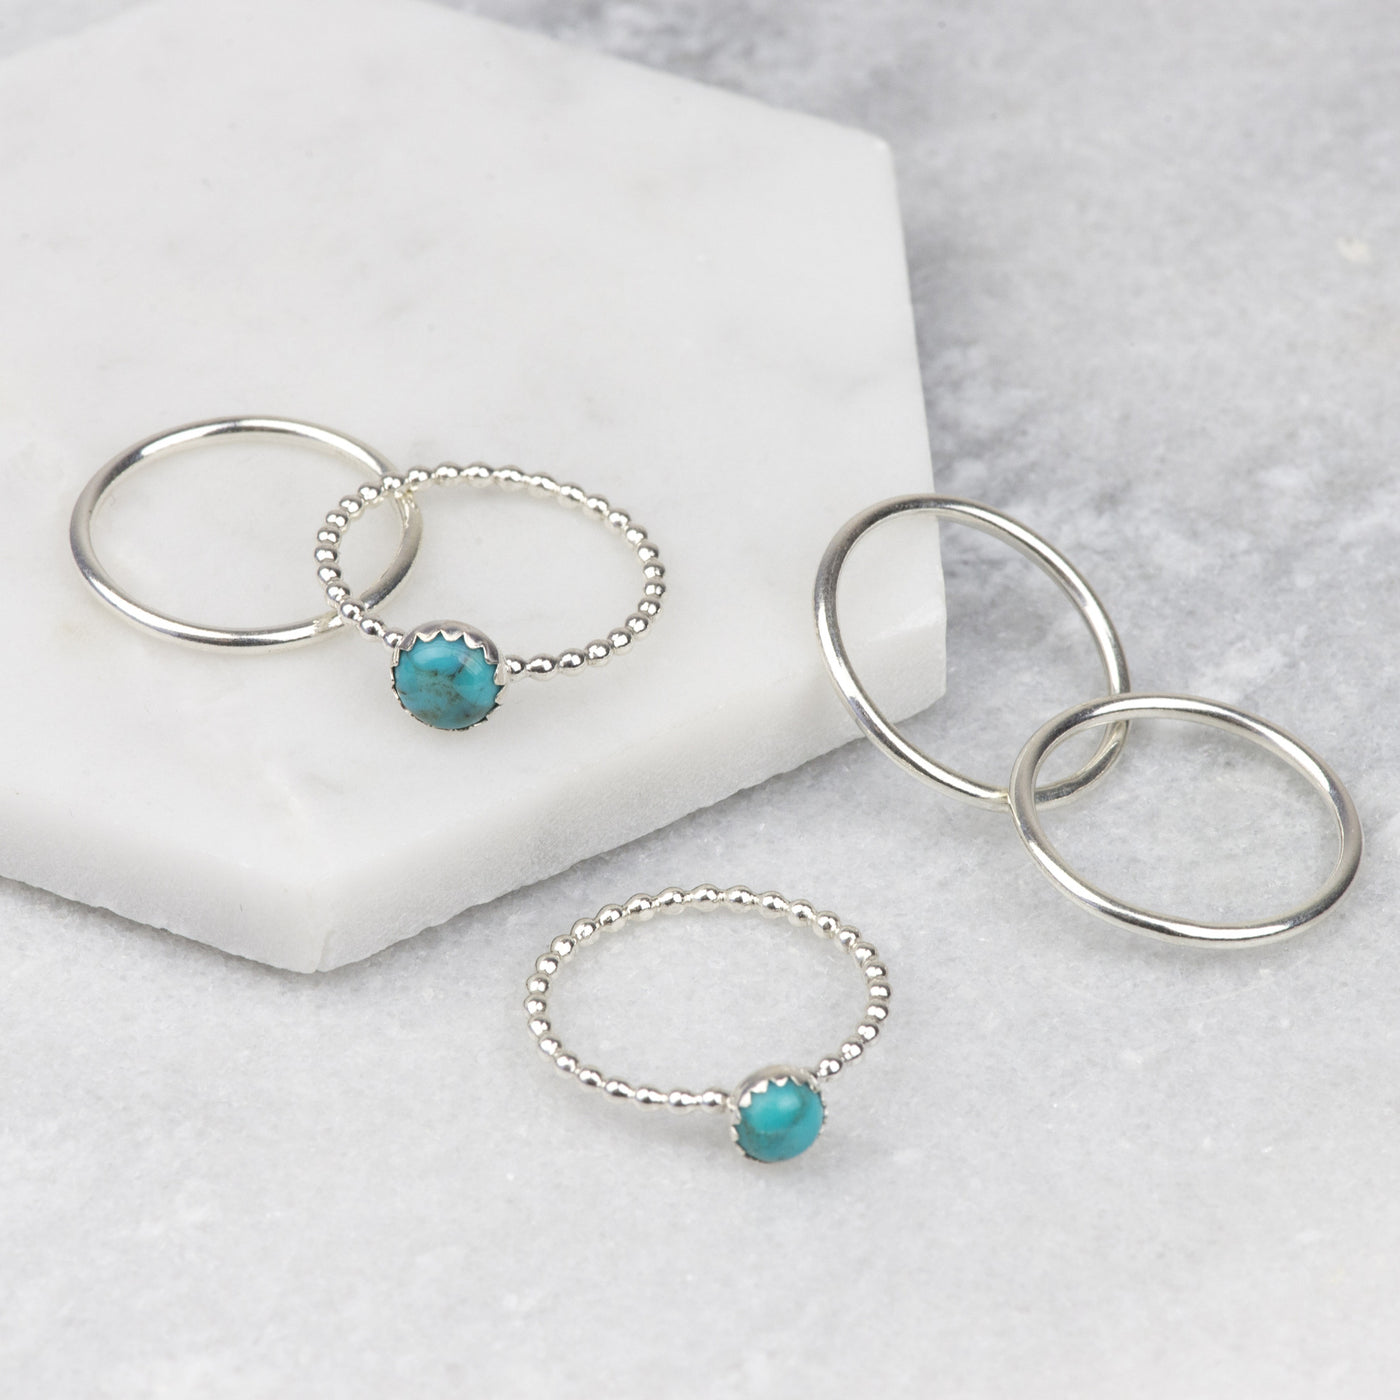 Handmade Sterling Silver Turquoise Stacking Ring Set